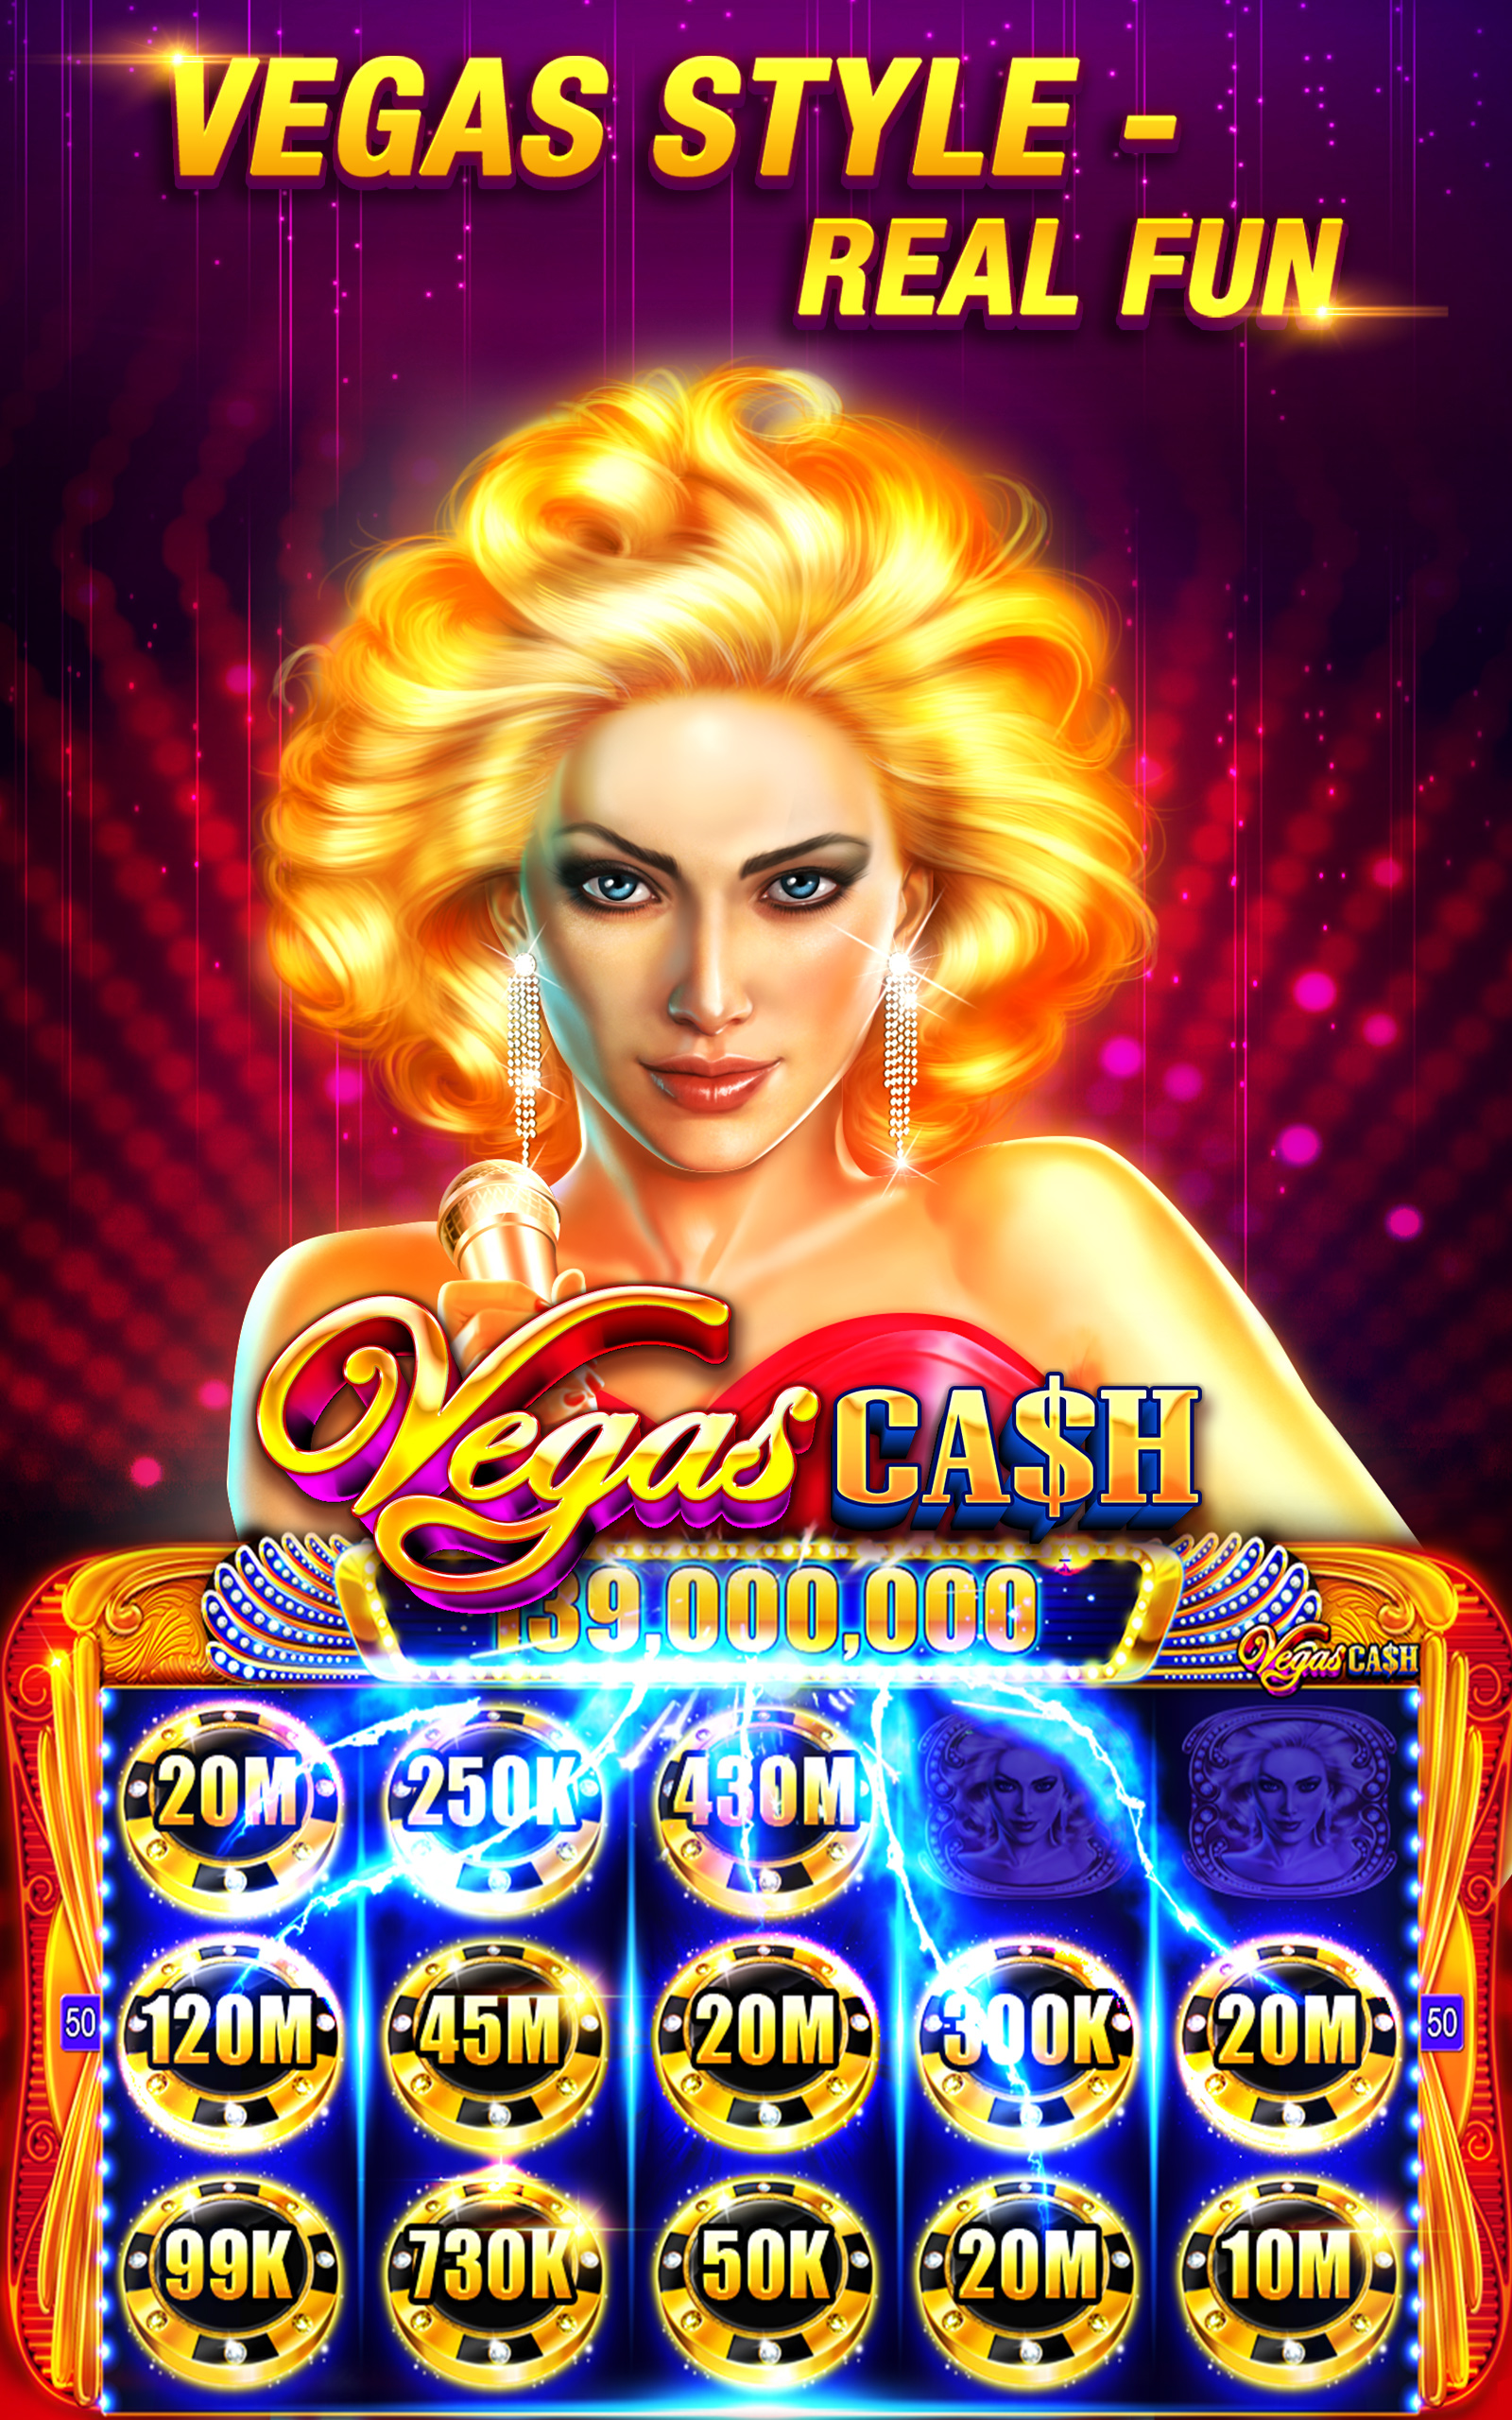 Free slot games uk